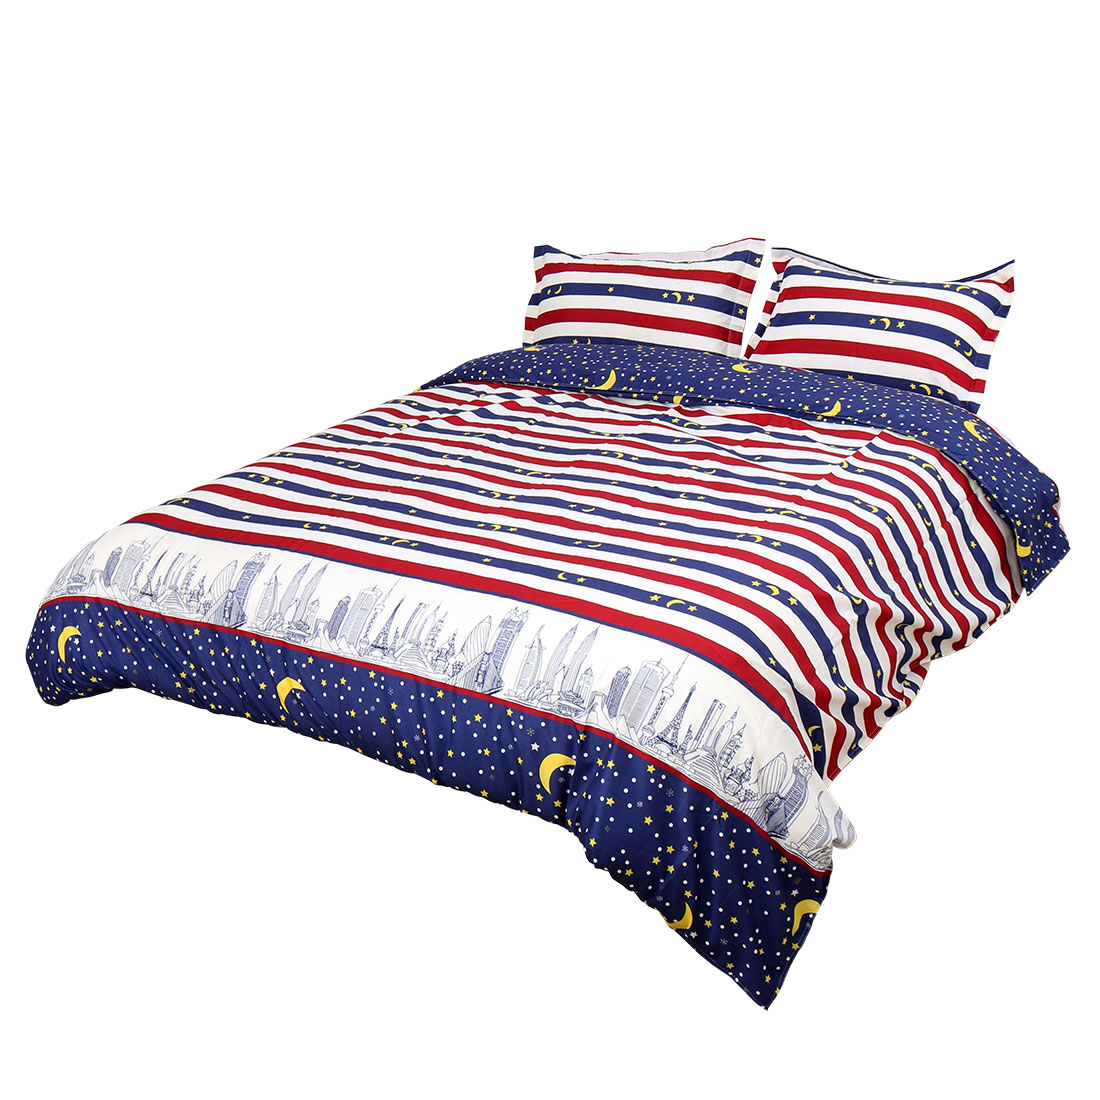 City Night Pattern Duvet Cover Pillowcase Quilt Cover Bedding Set Super King Size